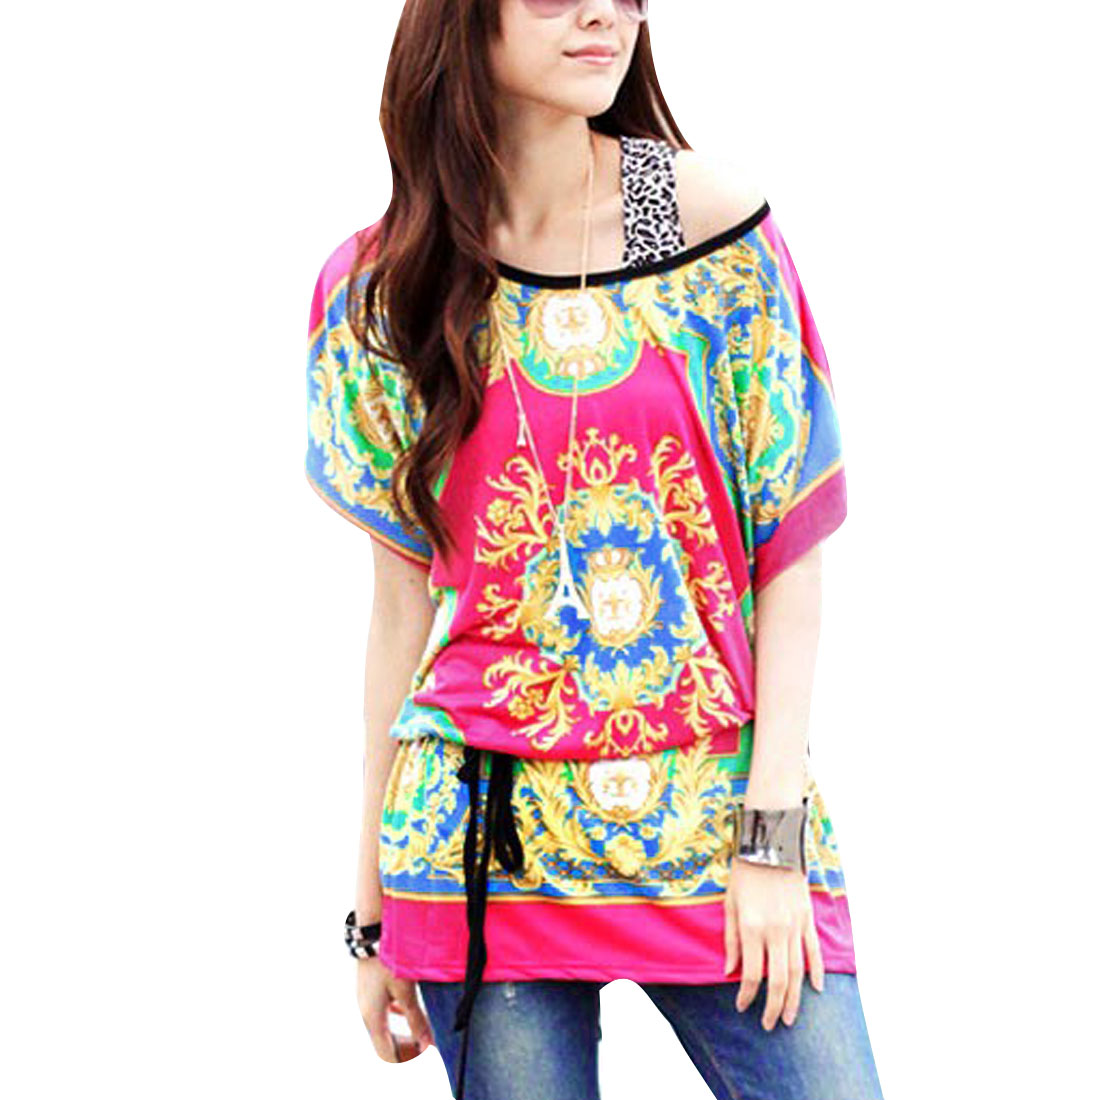 Ladies Muticolor Style Round Neck Batwing Sleeve Tunic Shirt Fuchsia L